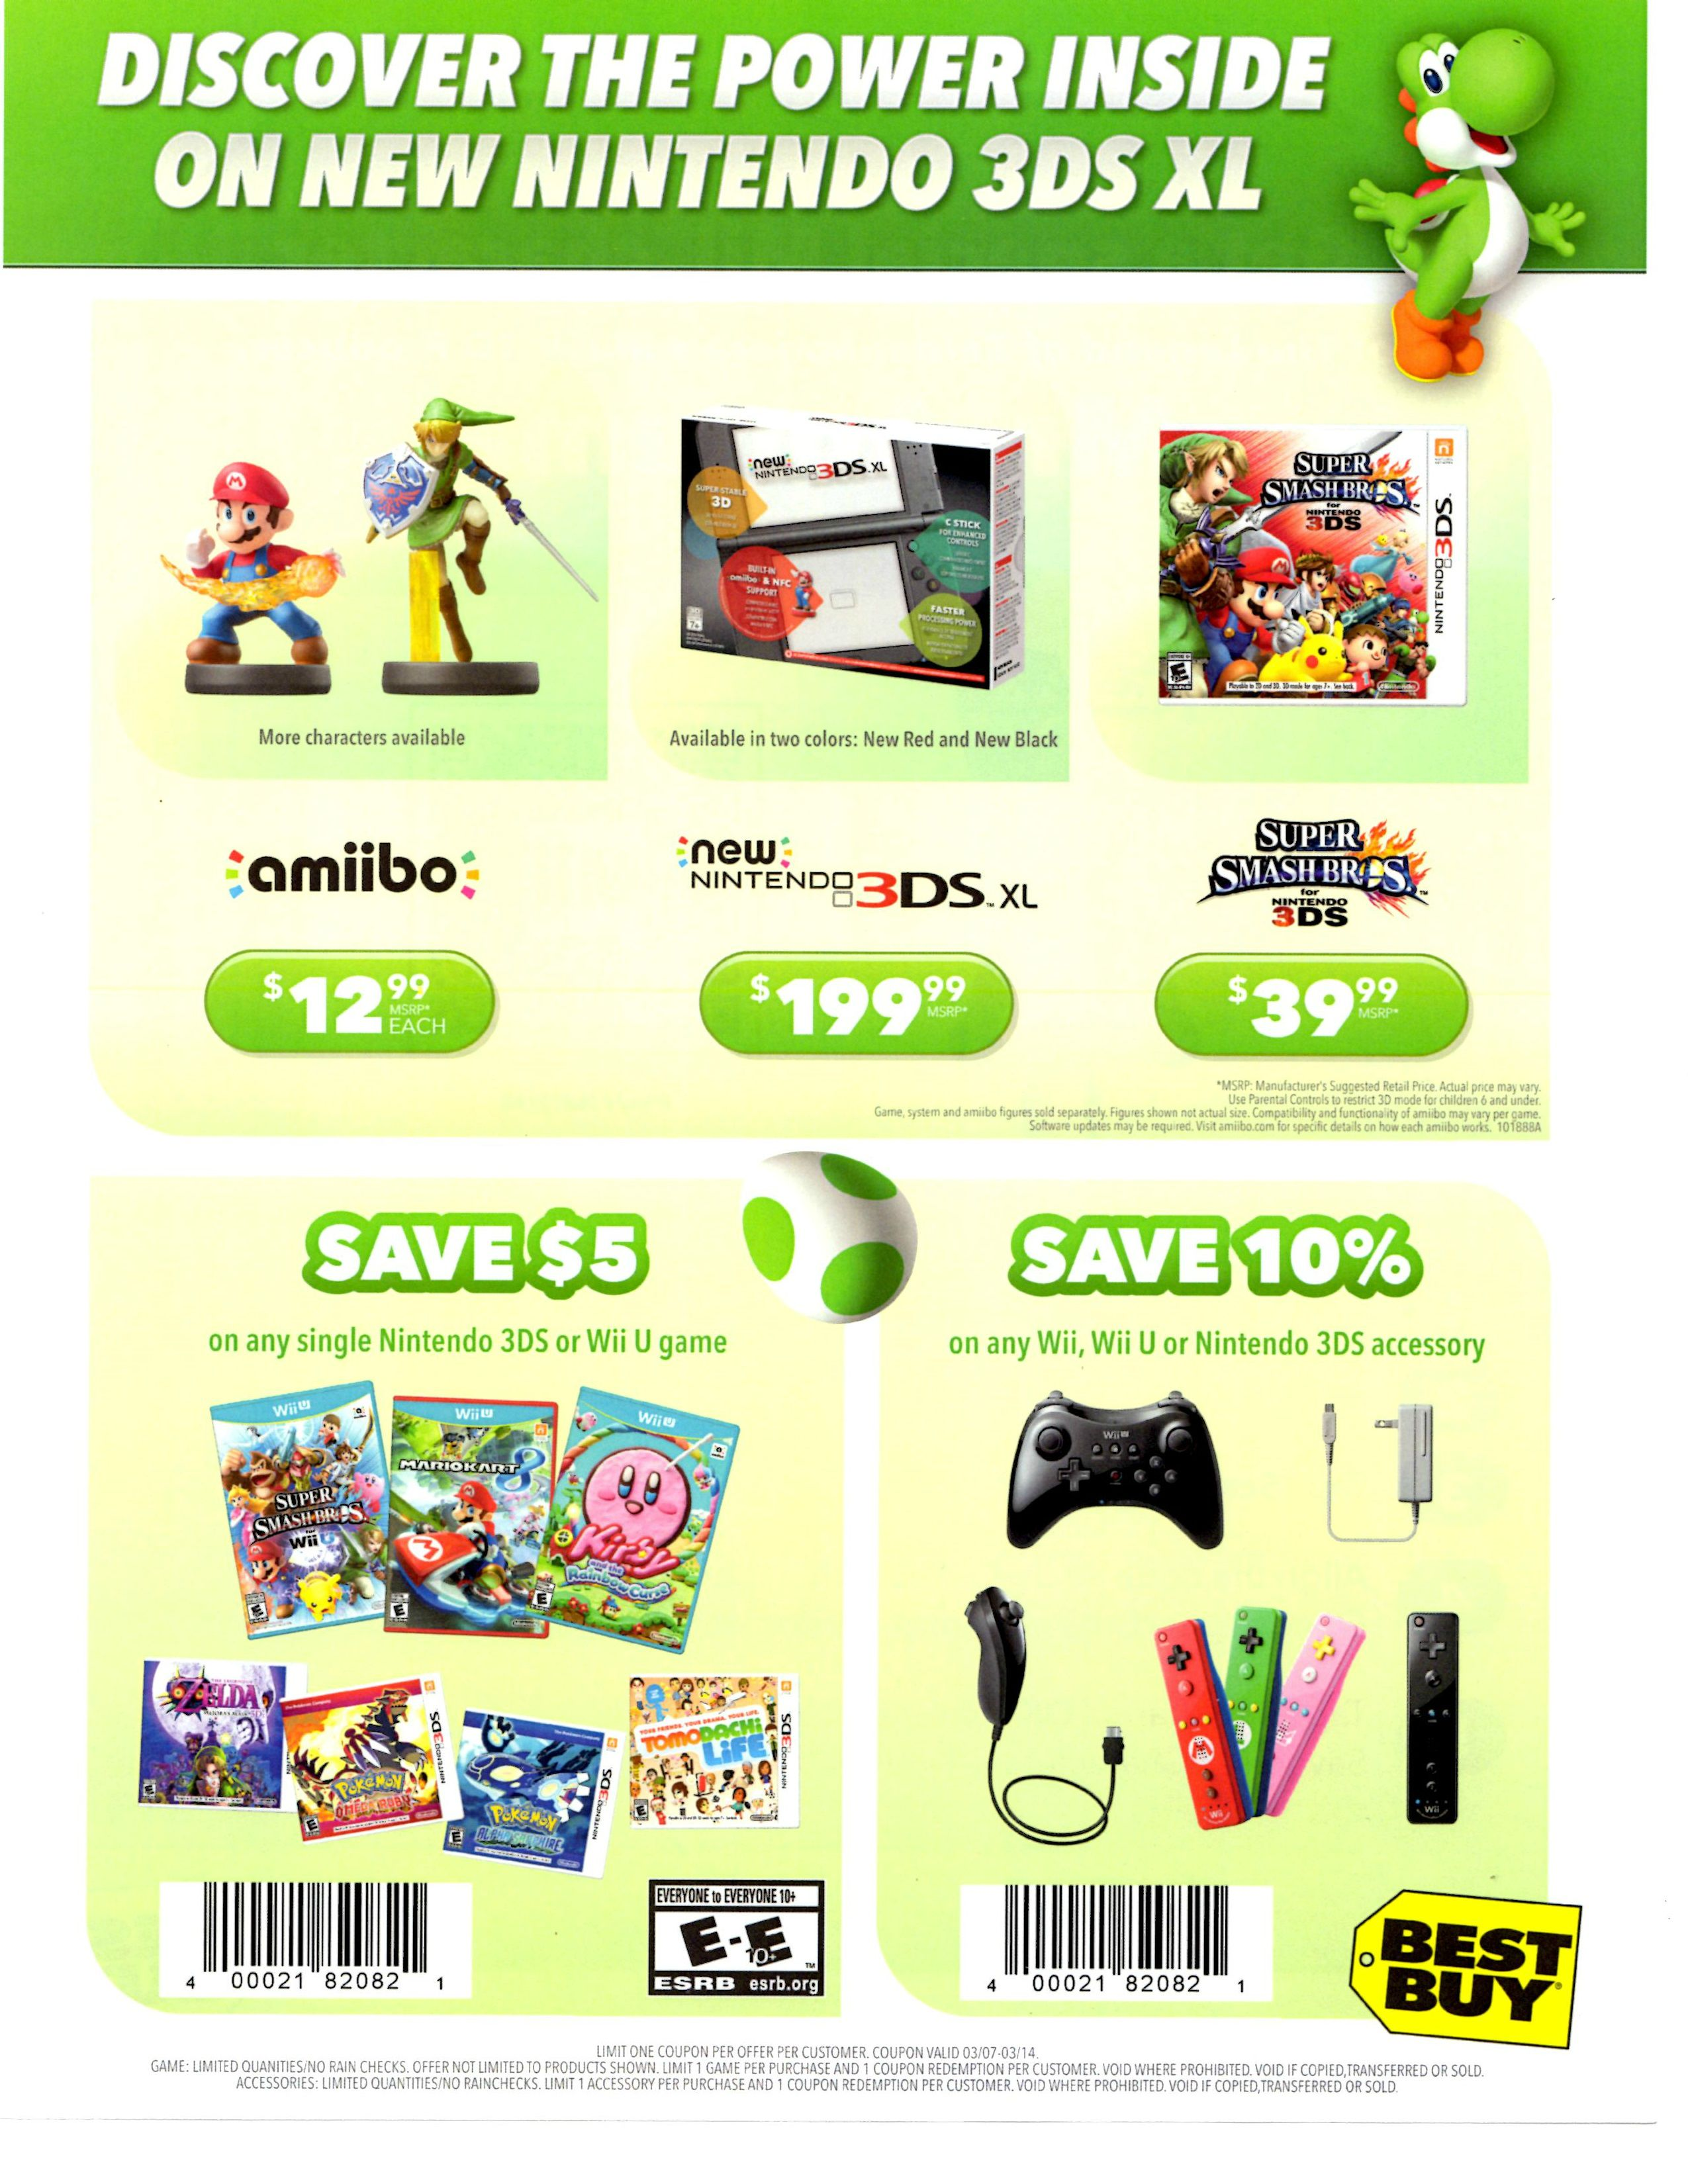 Coupon codes for nintendo 3ds